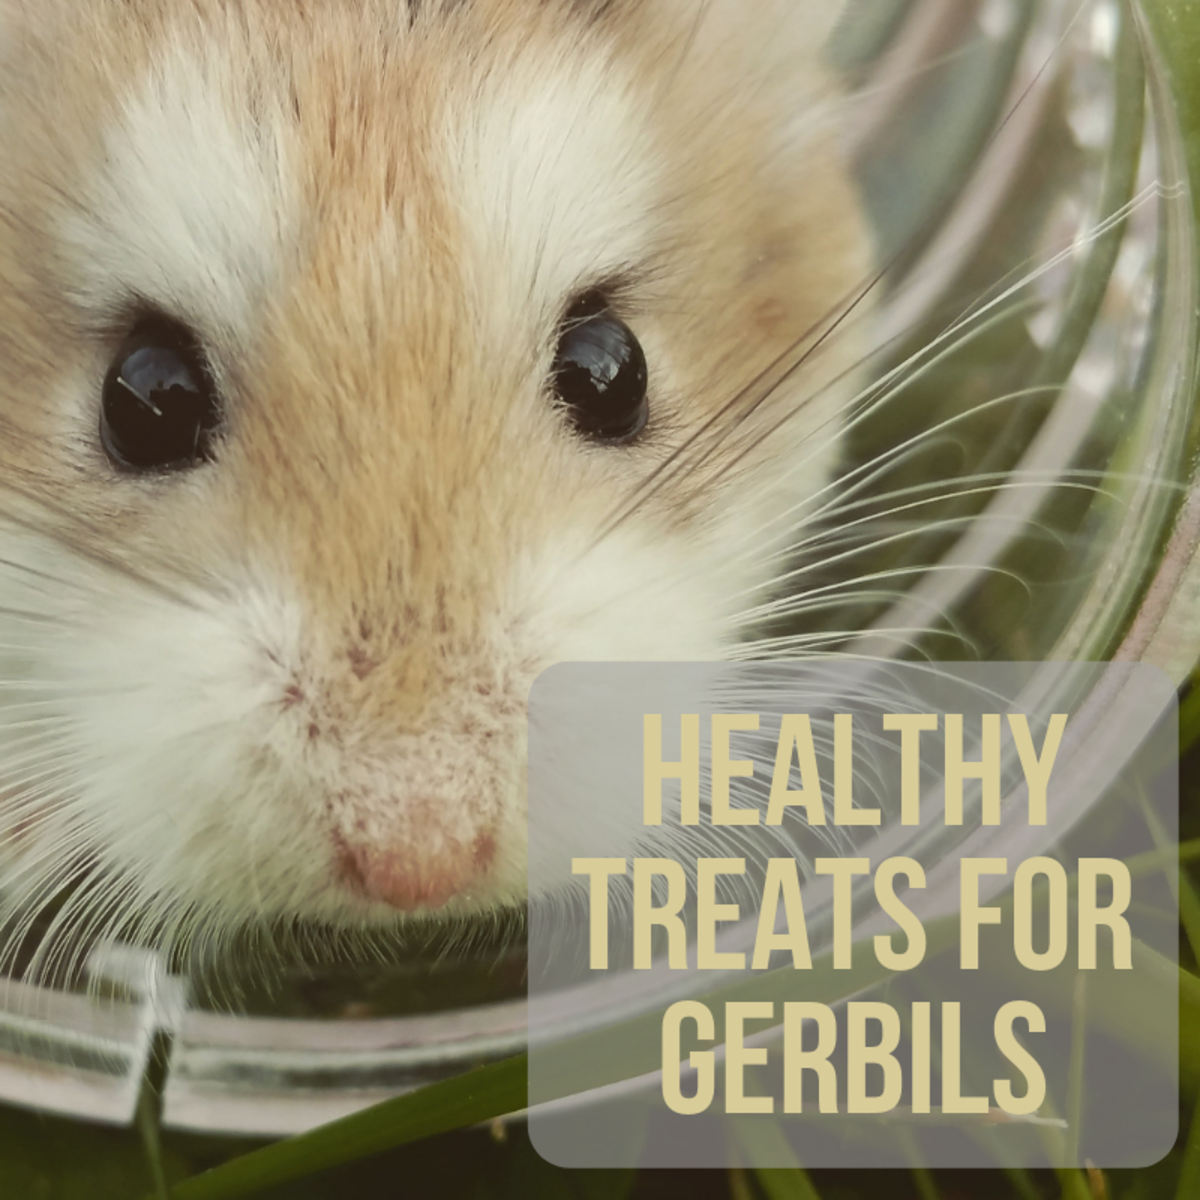 Gerbils love healthy snacks, but which fruits, veggies, seeds, and nuts are safe for them to eat?